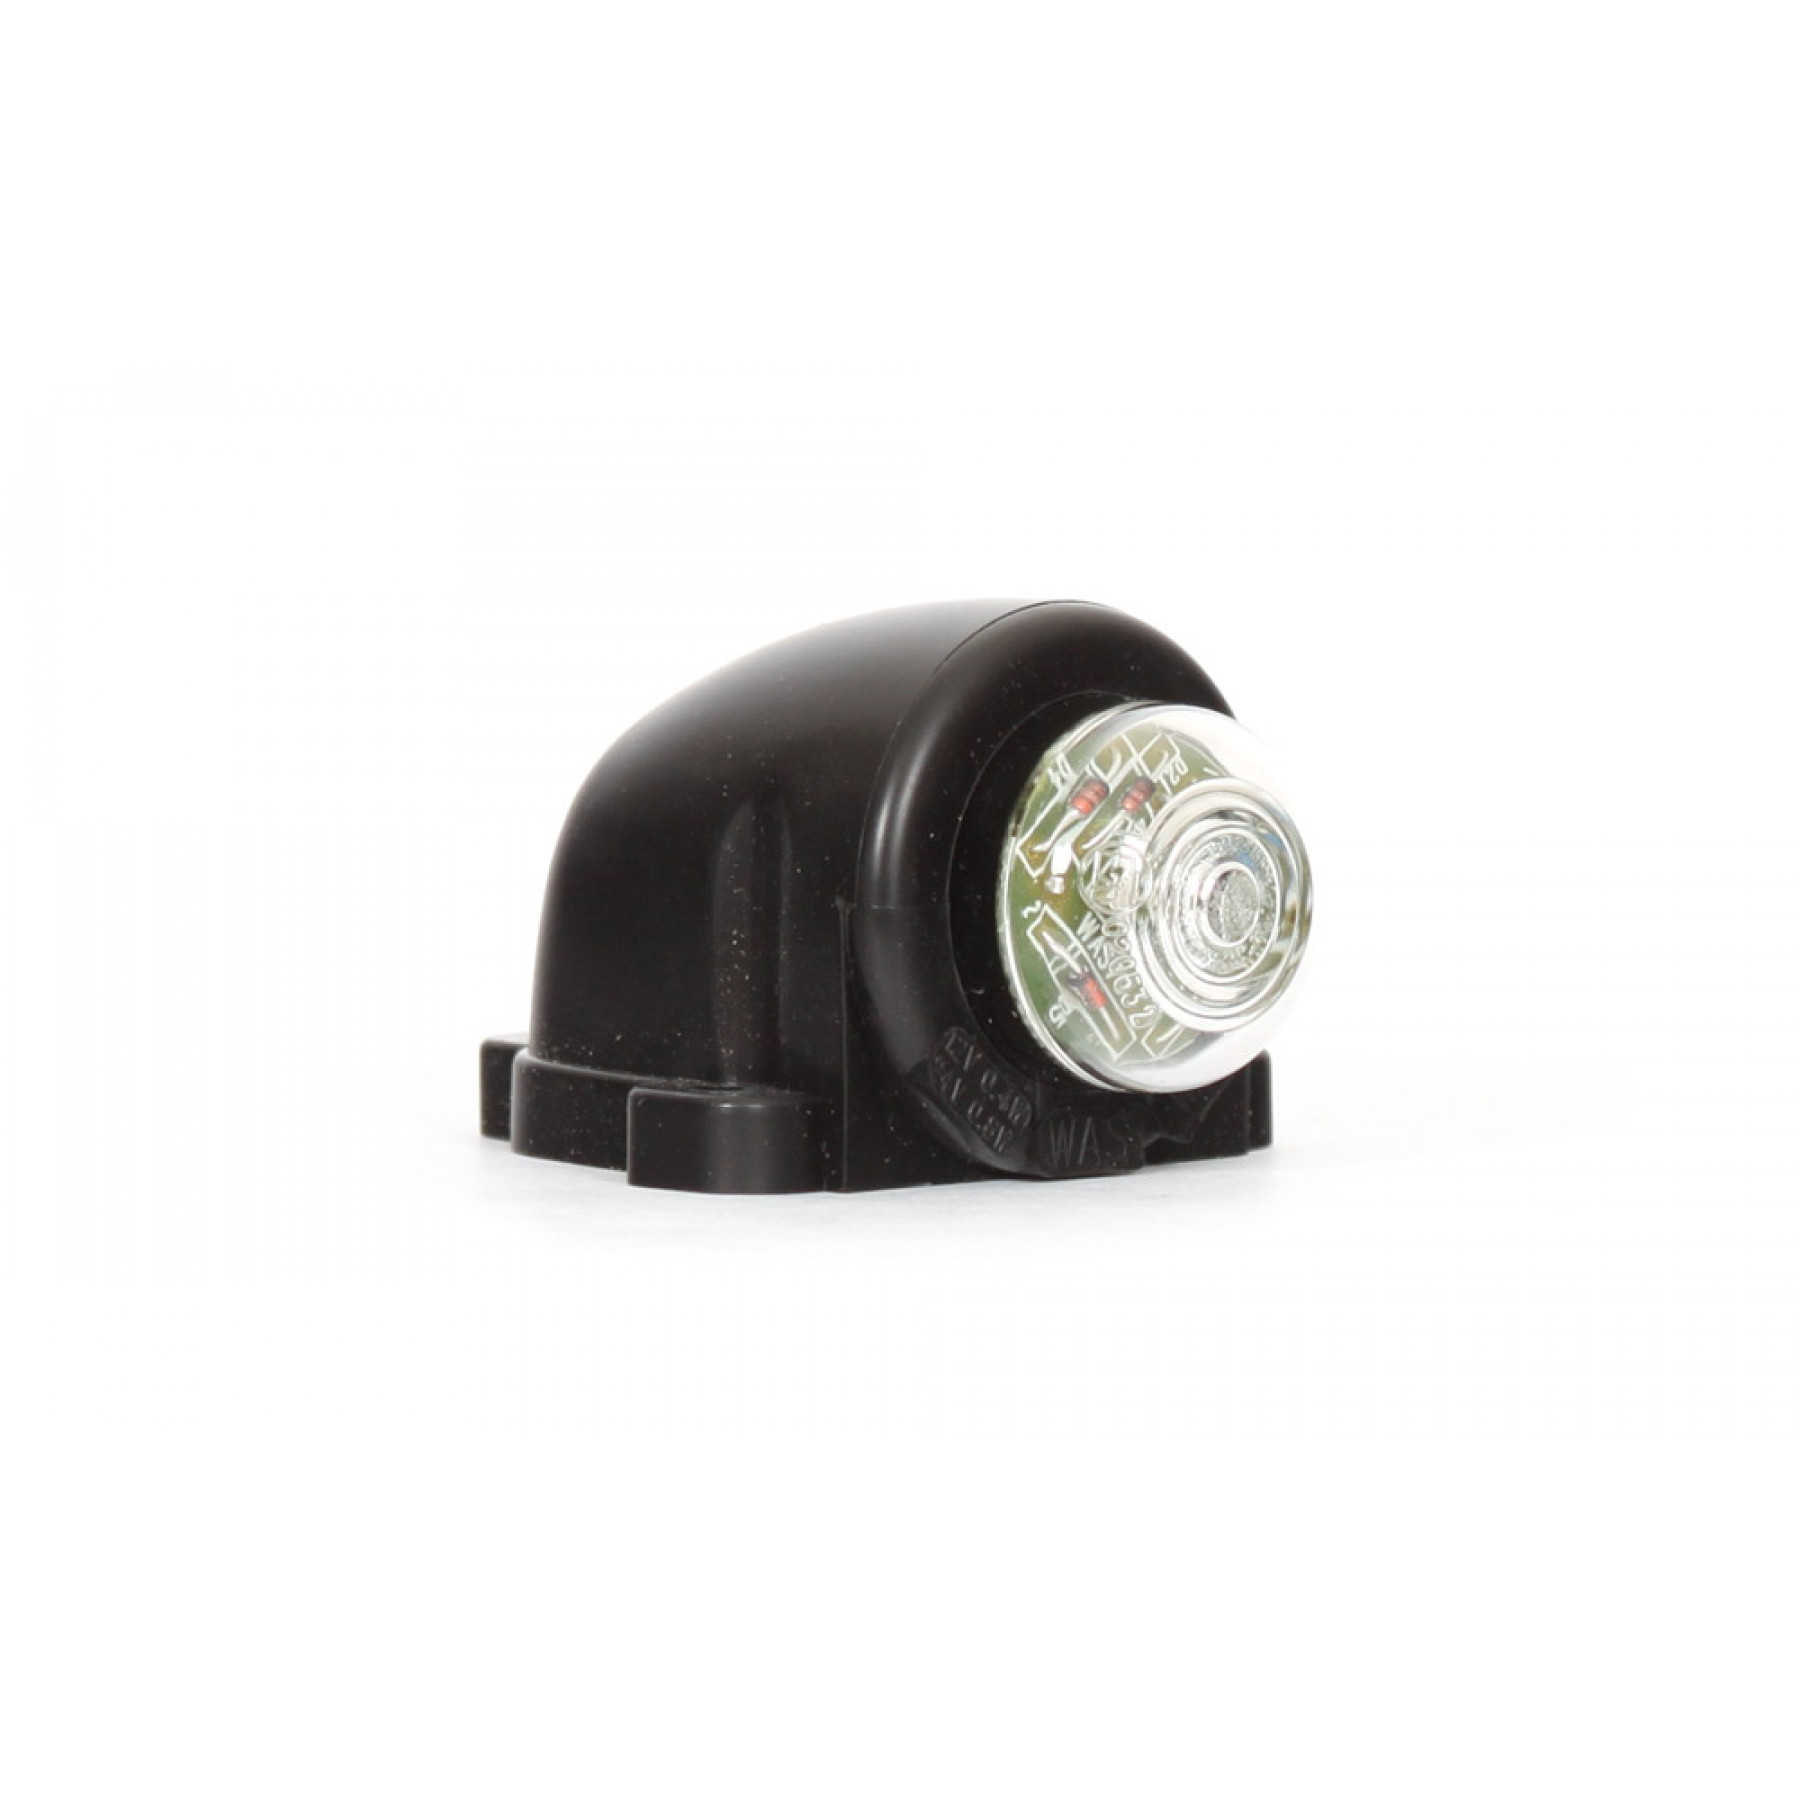 Markeringslamp LED Wit